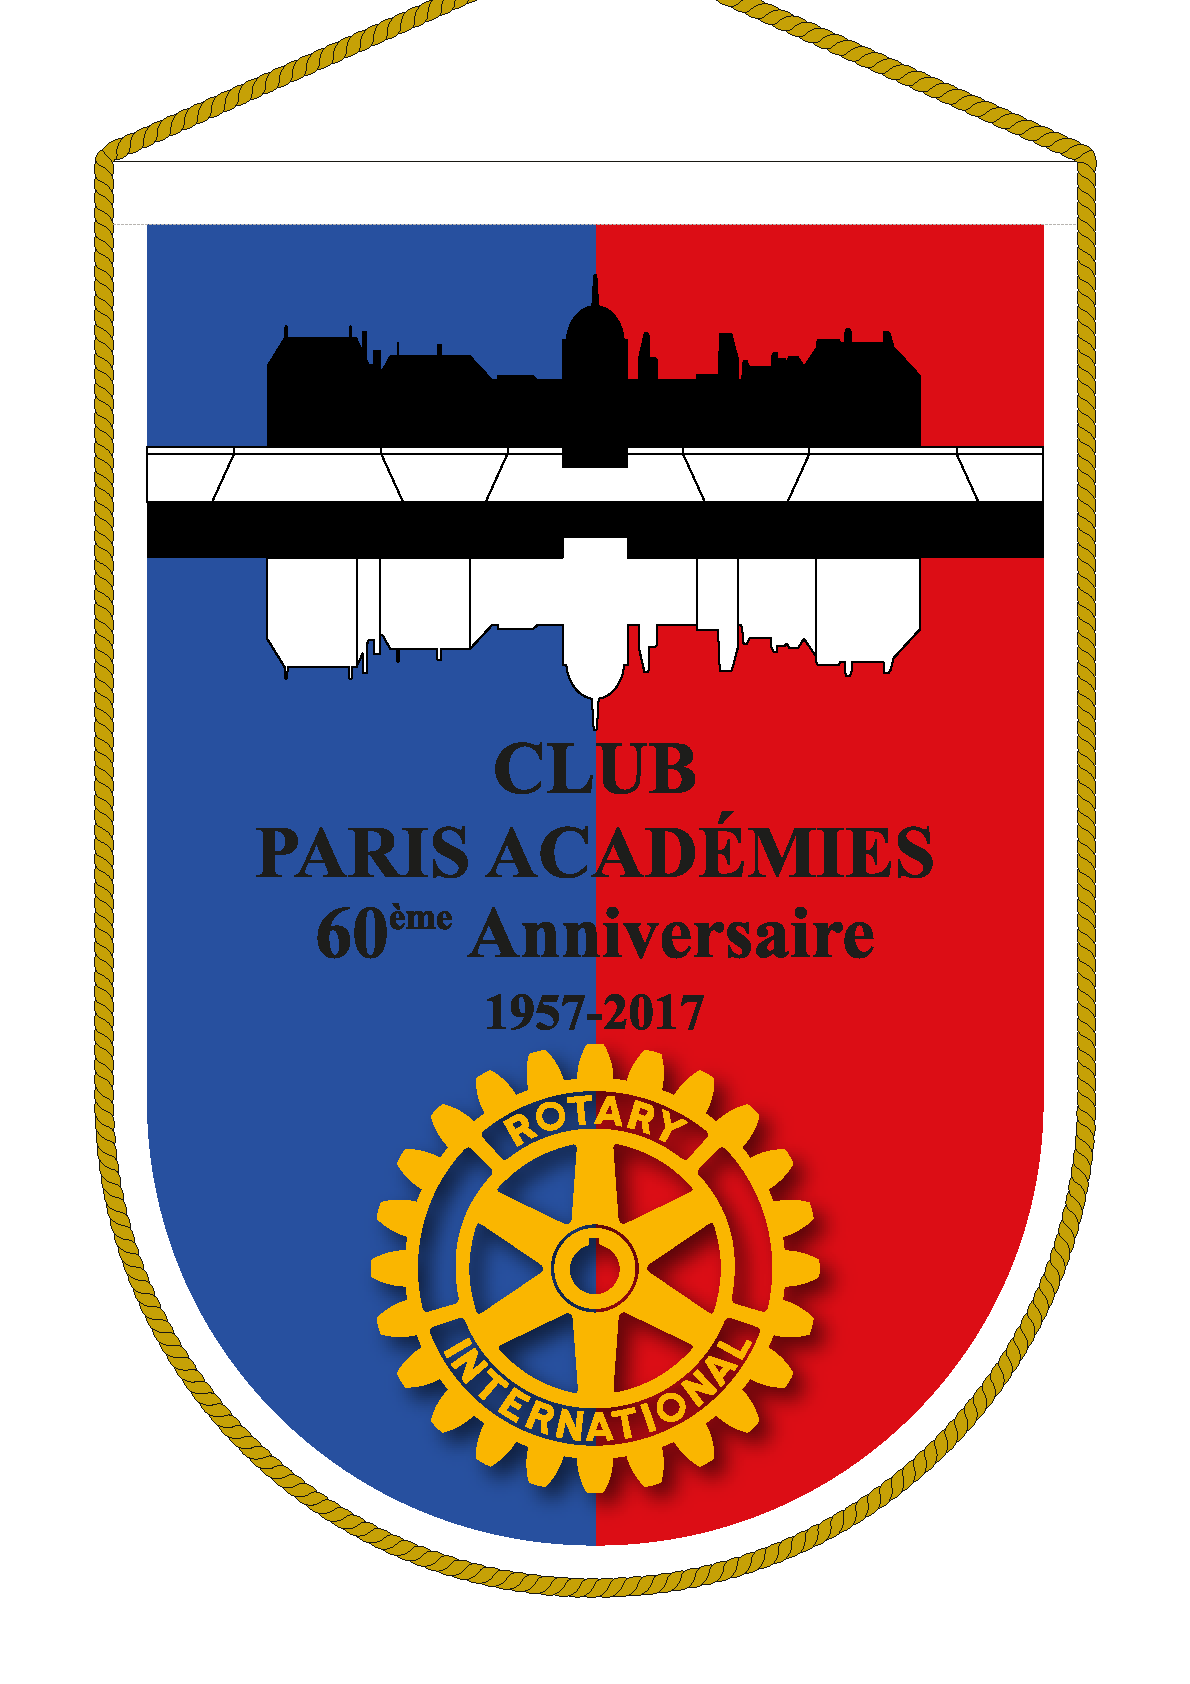 FANION ROTARY CLUB PARIS ACADEMIES